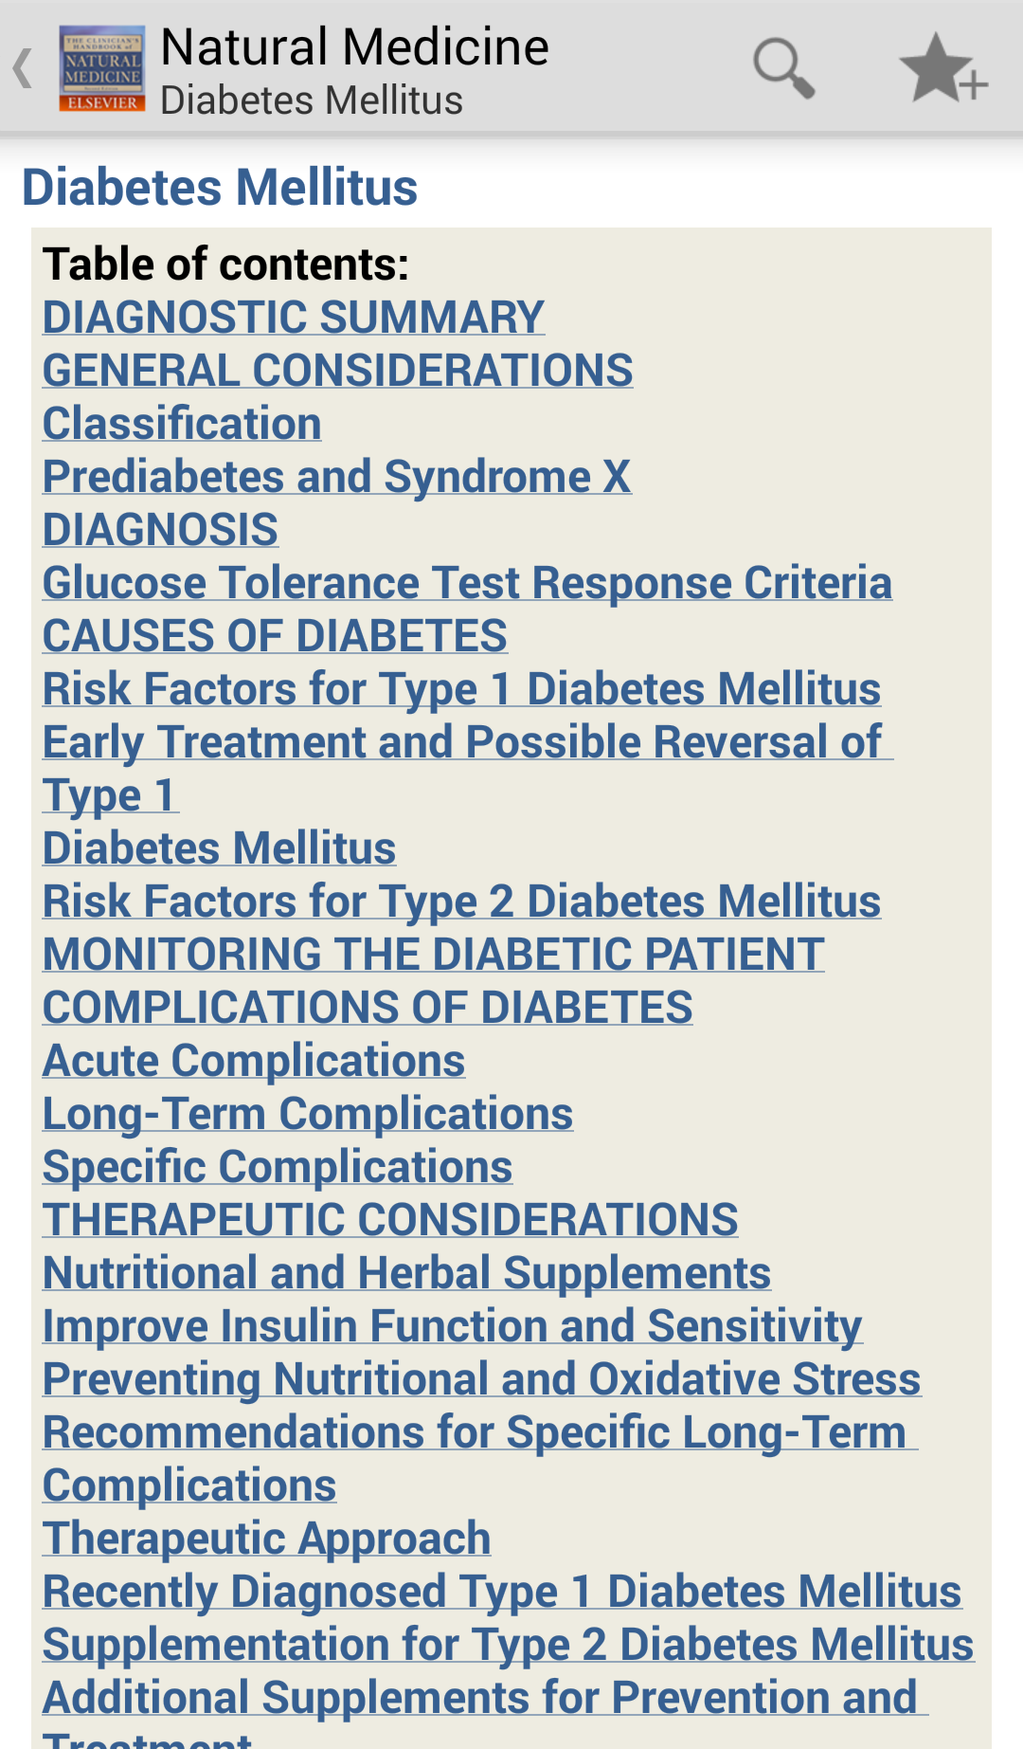 The Clinician's Handbook of Natural Medicine Screenshot